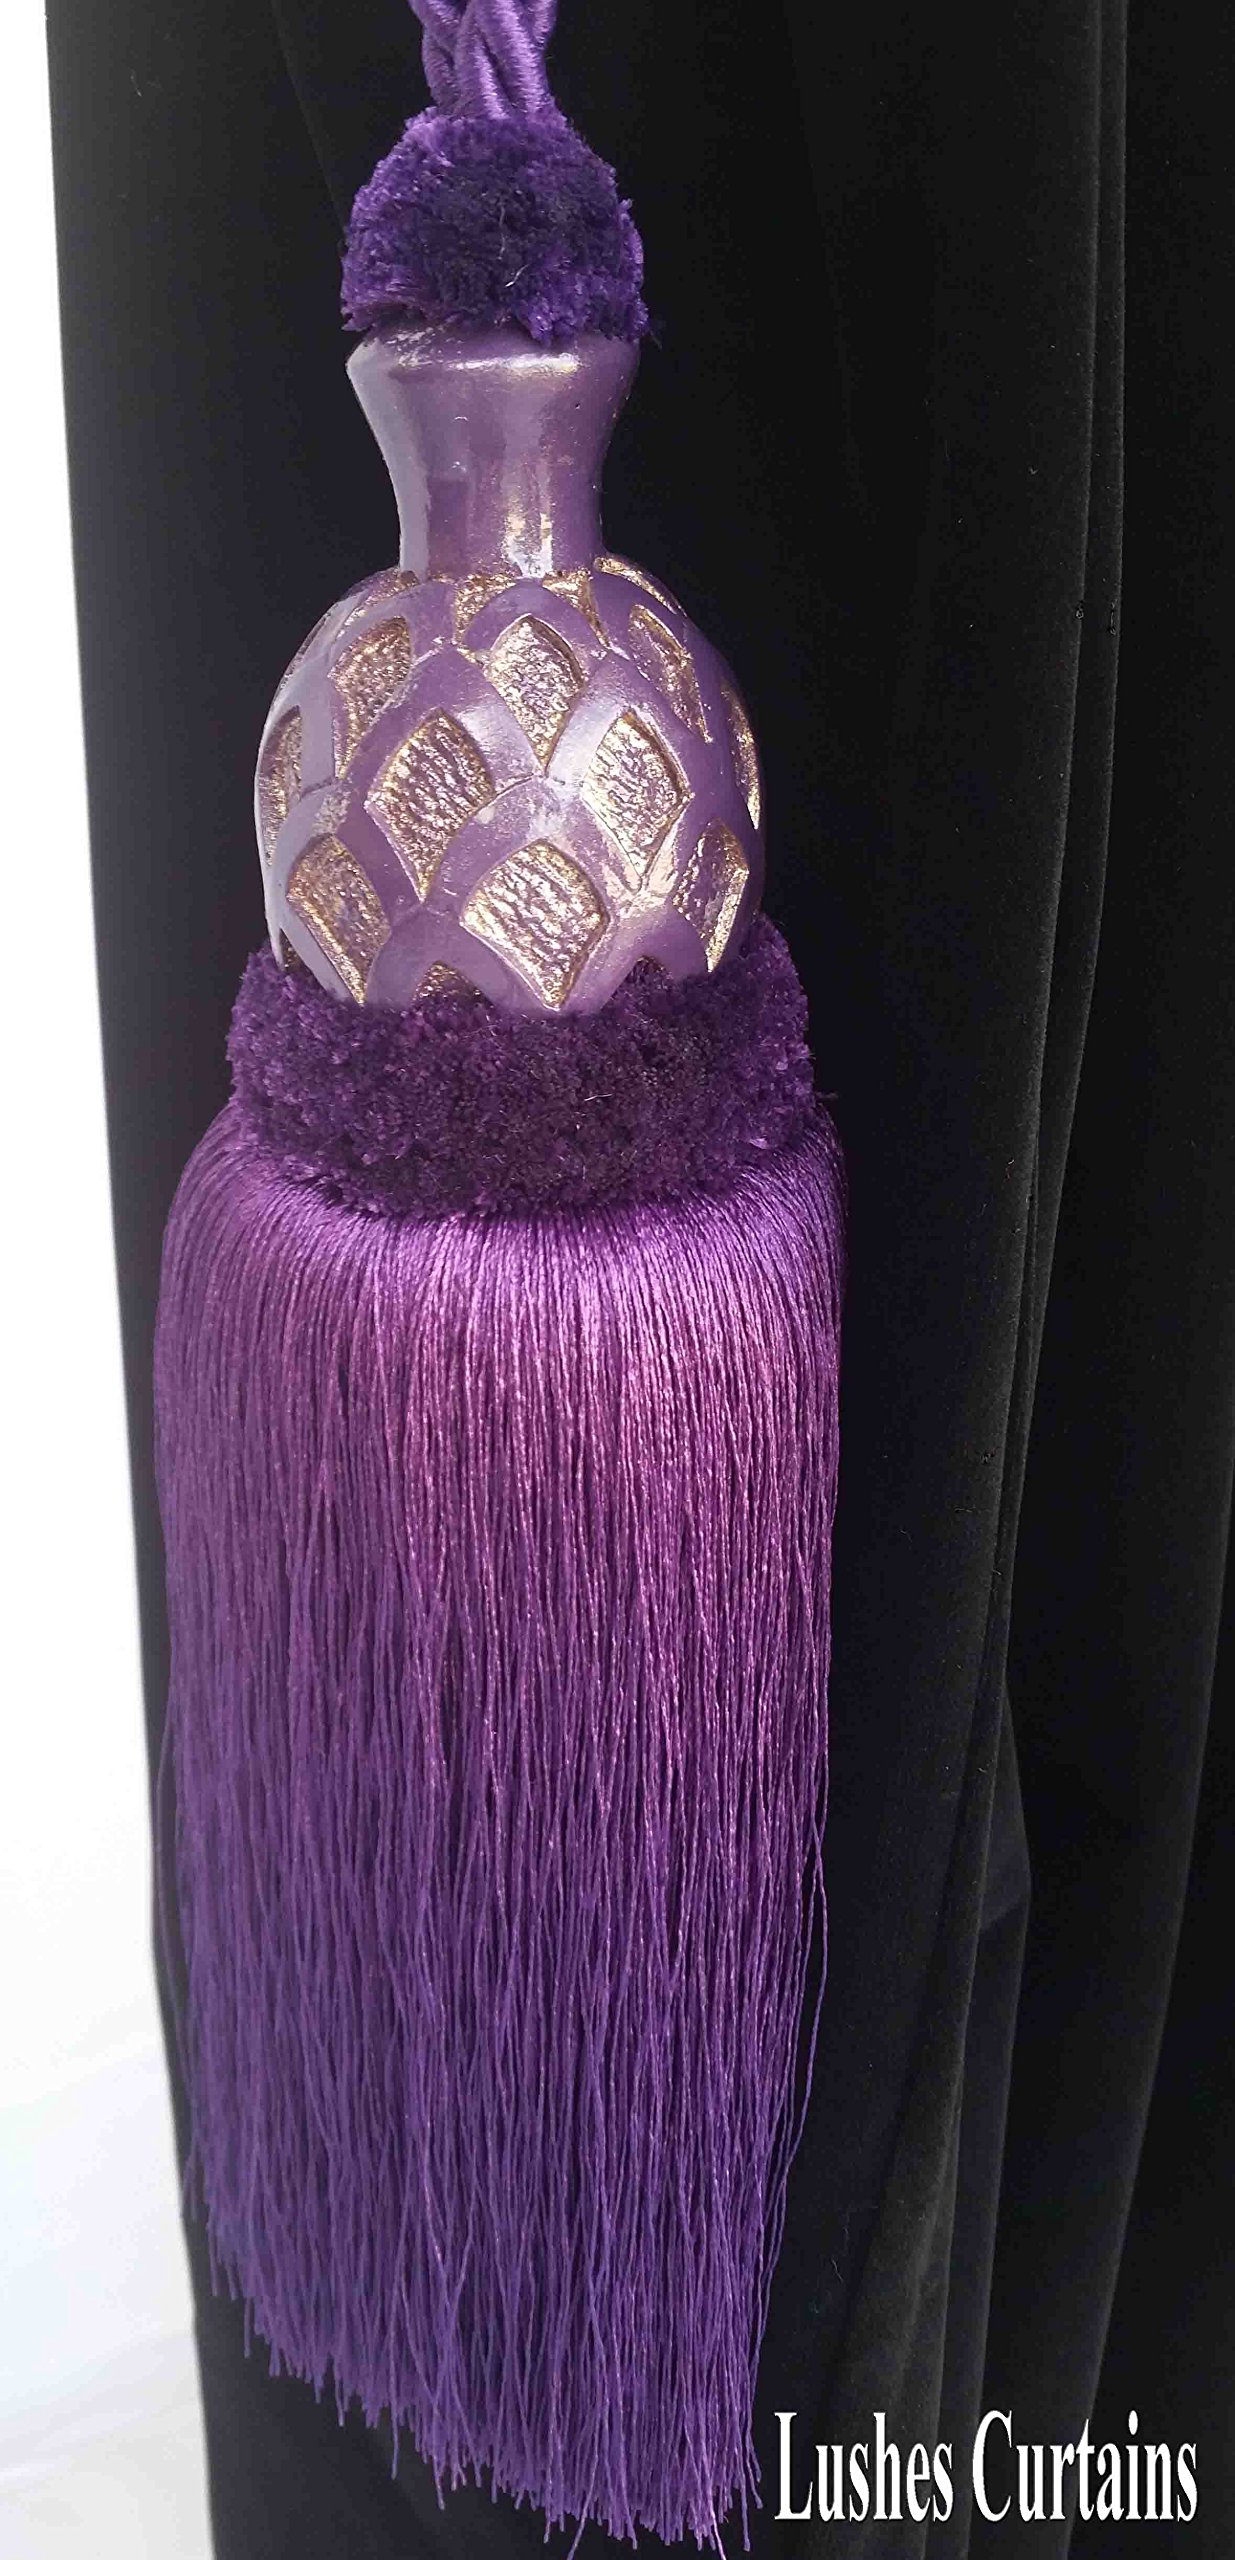 1 Luxury Handmade Purple Color w/Wood Single Tassel Rope Tie Back Window Treatment Curtain Drapery Vintage Look 2 Spread Cord Holdback Decor Tieback/Pull Back by Lushes Curtains (Image #1)